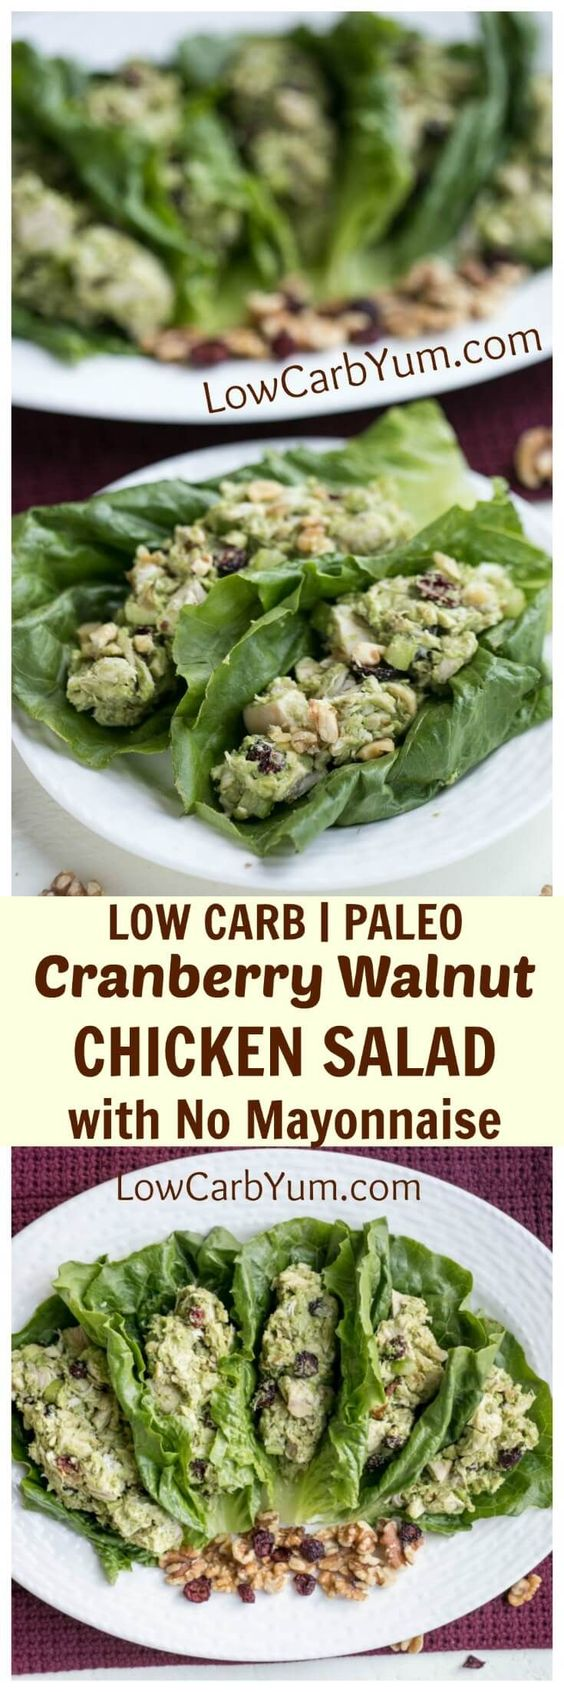 A low carb cranberry walnut chicken salad made with @CAWalnuts. It's paleo friendly, gluten free, dairy free, and has no mayonnaise. #walnuts #CG #ad | LowCarbYum.com